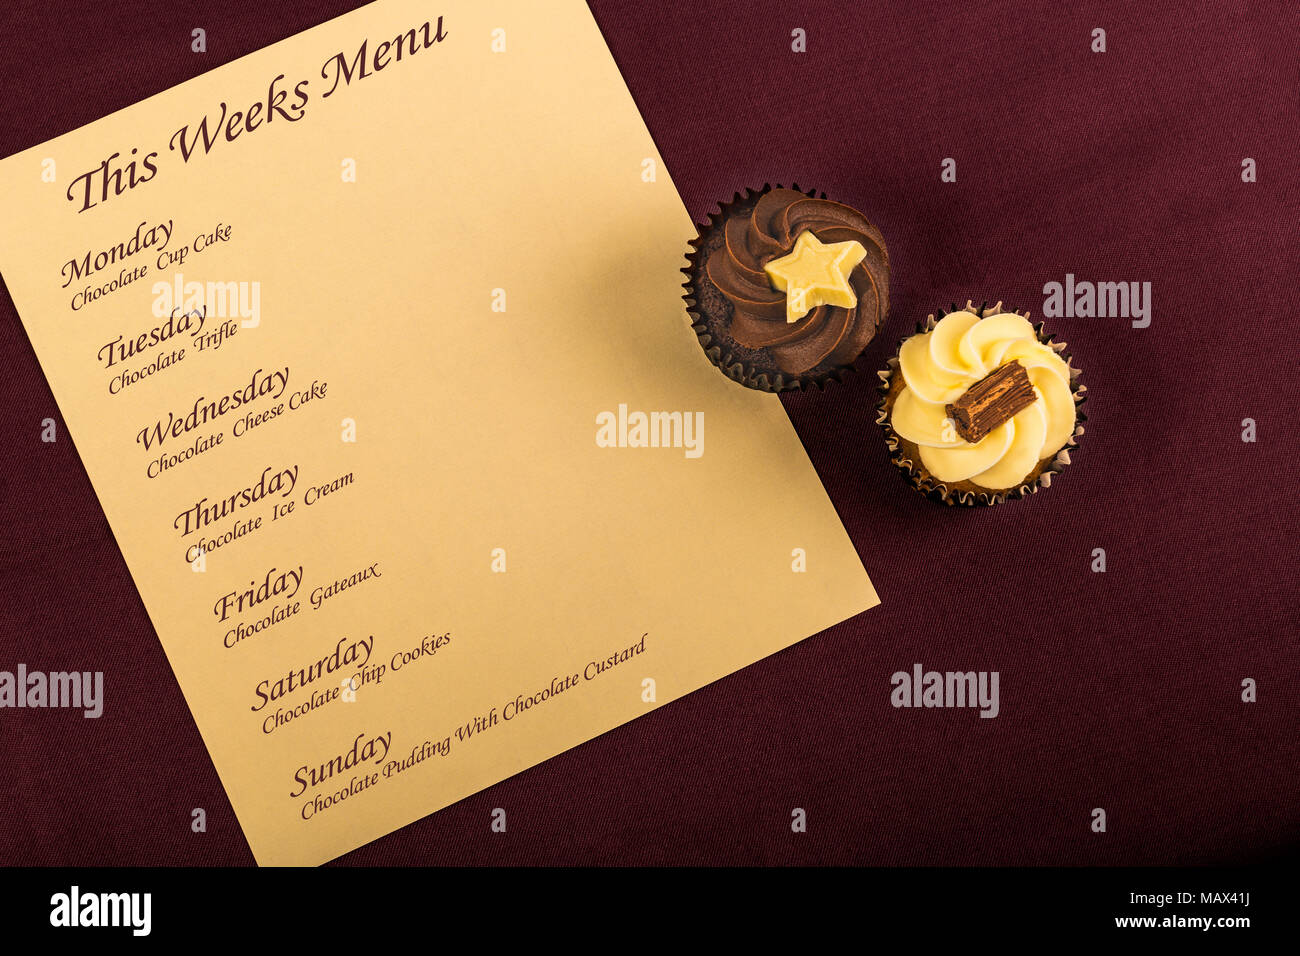 concept image of chocolate addiction - Stock Image